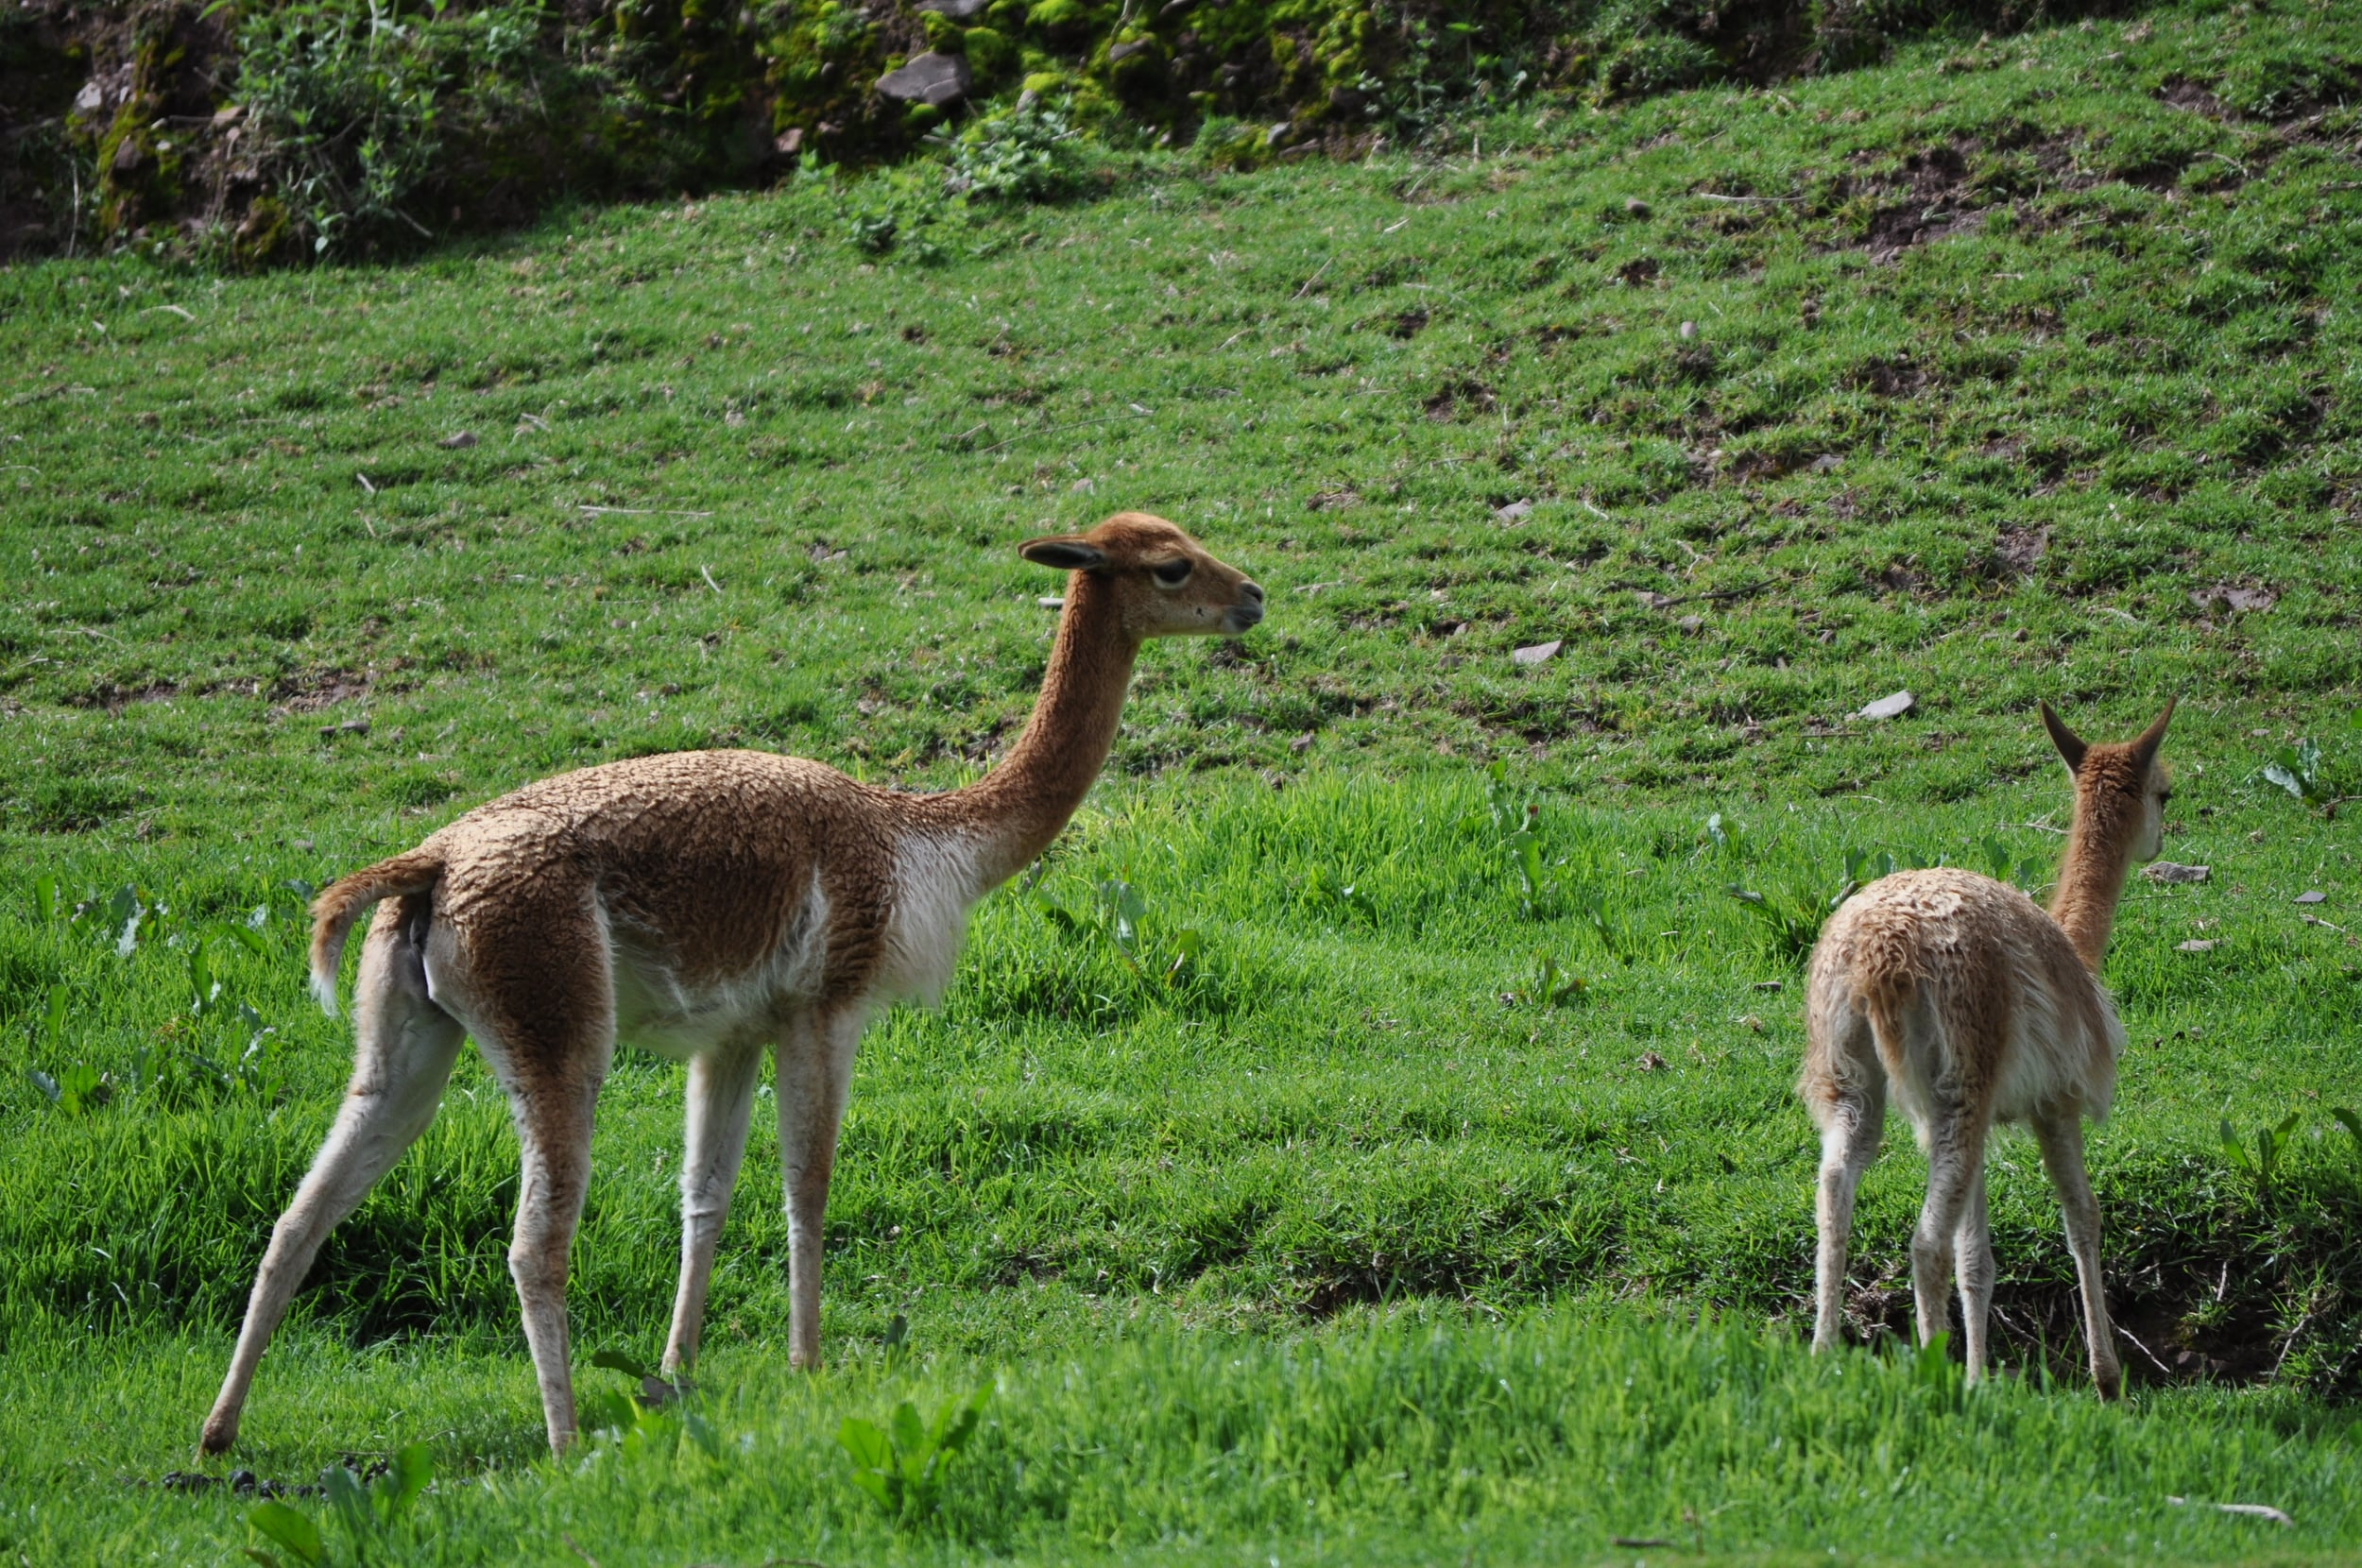 In 1950 the vicuna became an endangered species. The conservation efforts of this species managed to reestablish the population that is currently protected. Photo: Pamy Rojas